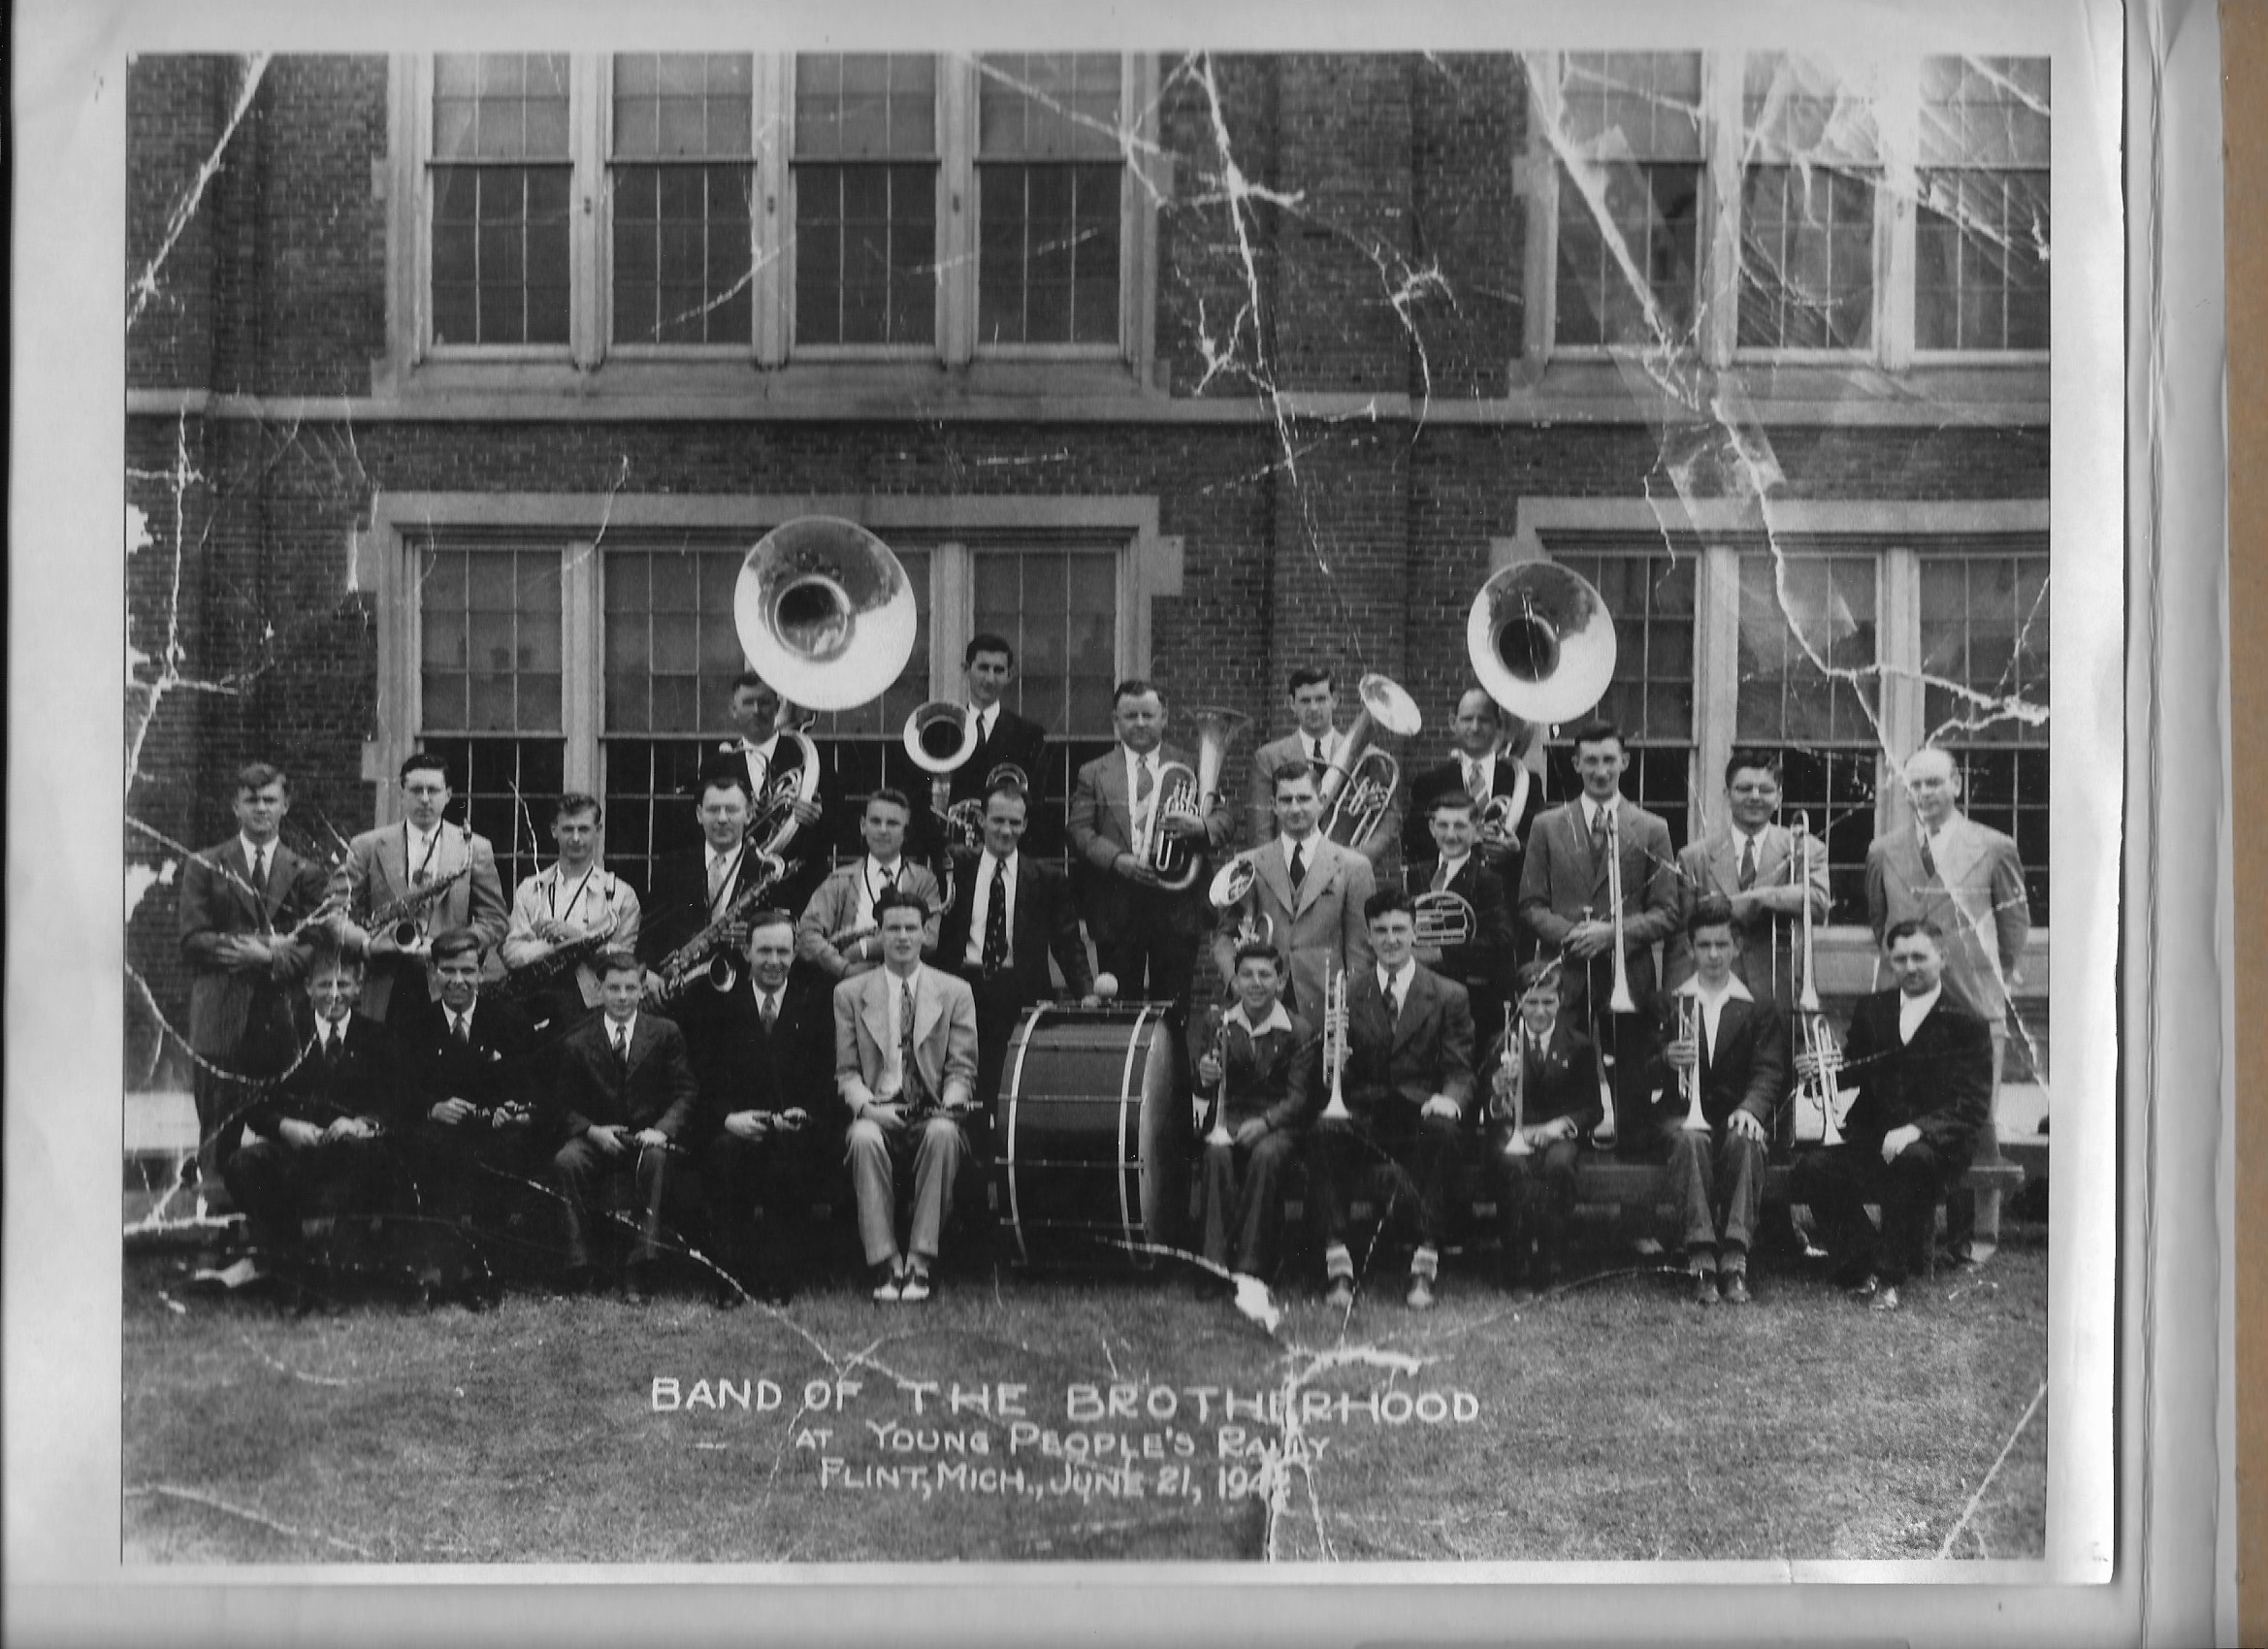 The German Brotherhood band, pictured in an unknown year in the 1940s.